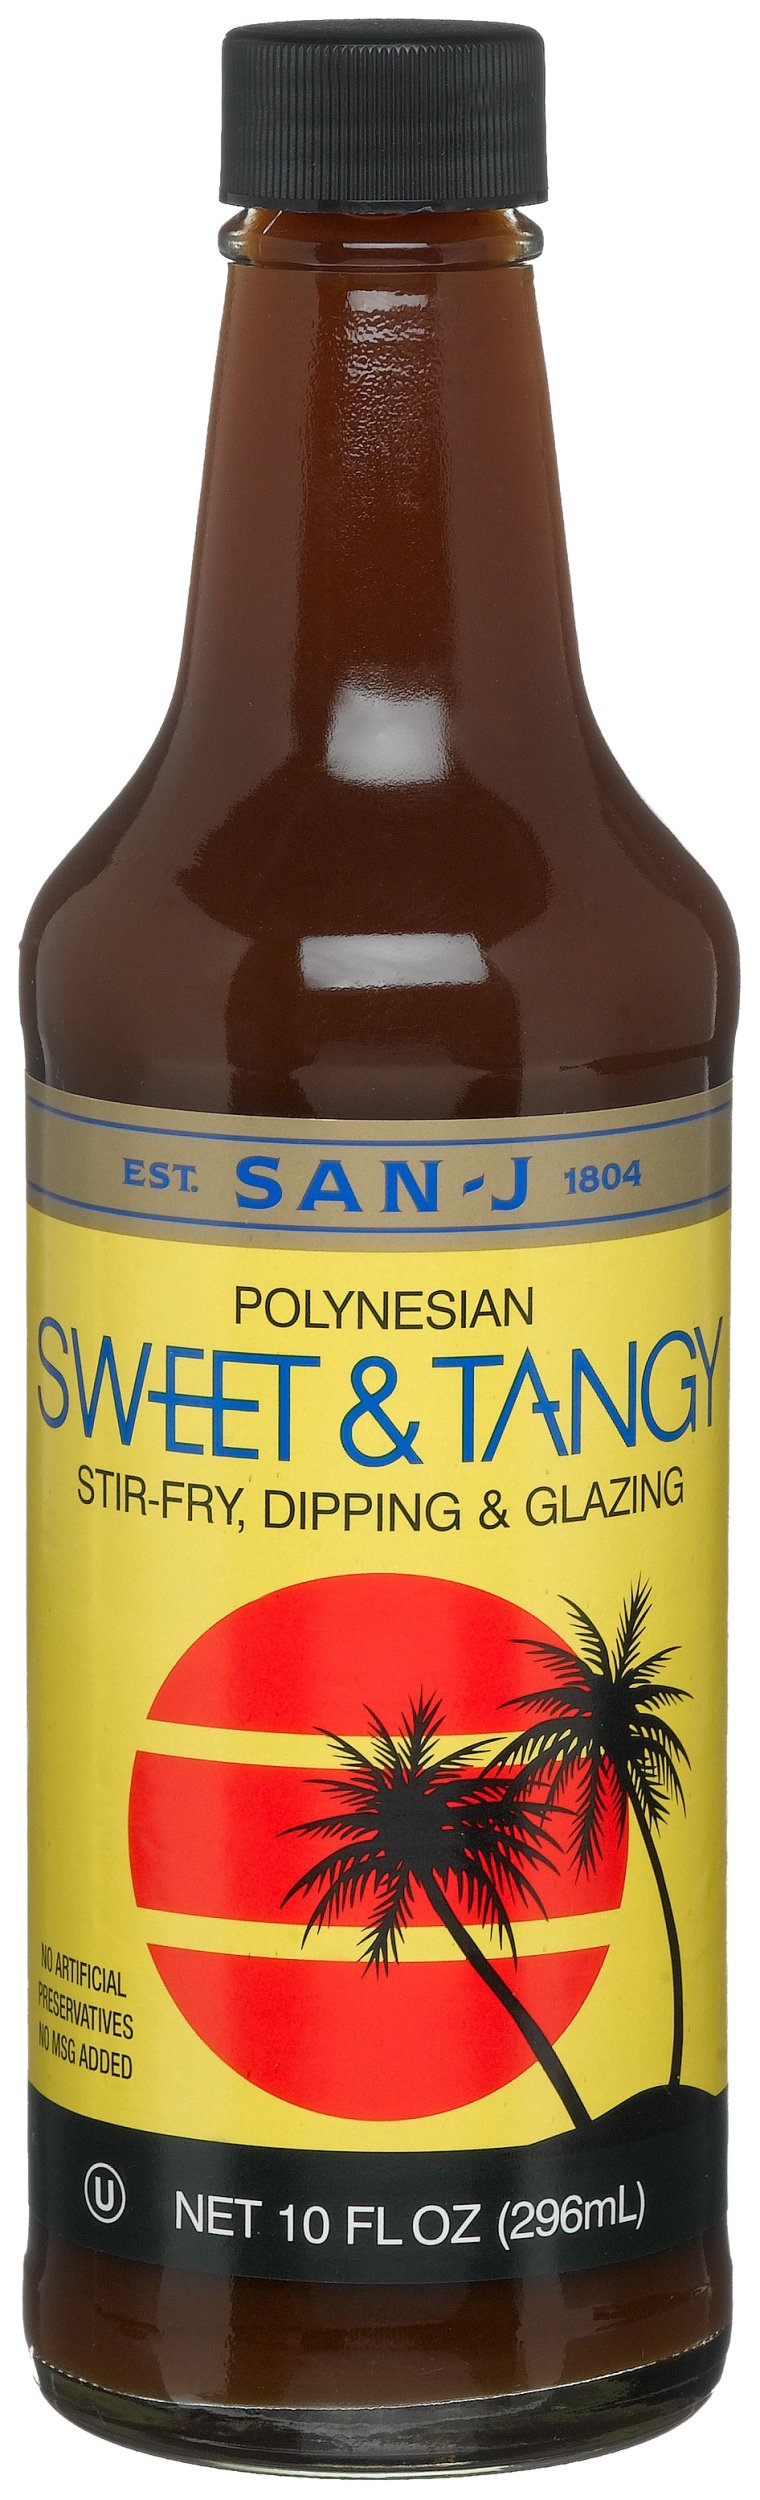 San-J Sweet & Tangy Sauce, 10-Ounce Bottles (Pack of 6)